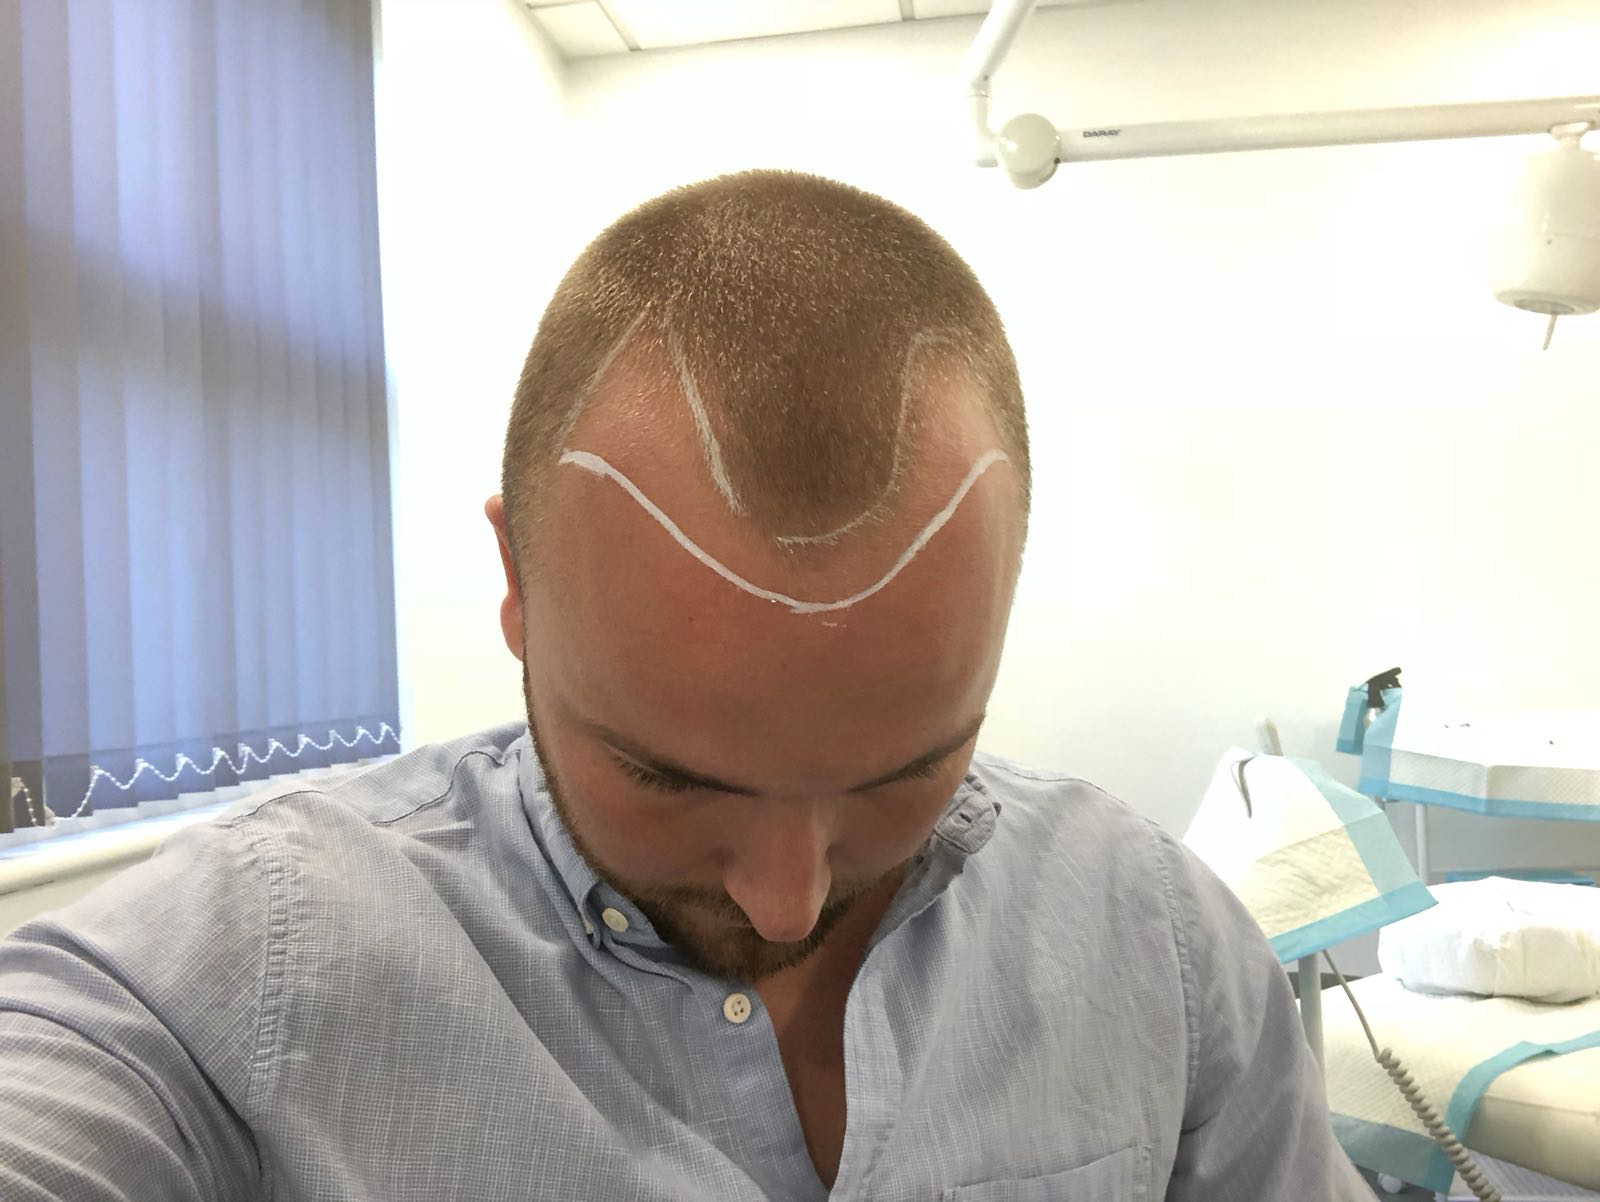 Hair Regrowth after a transplant